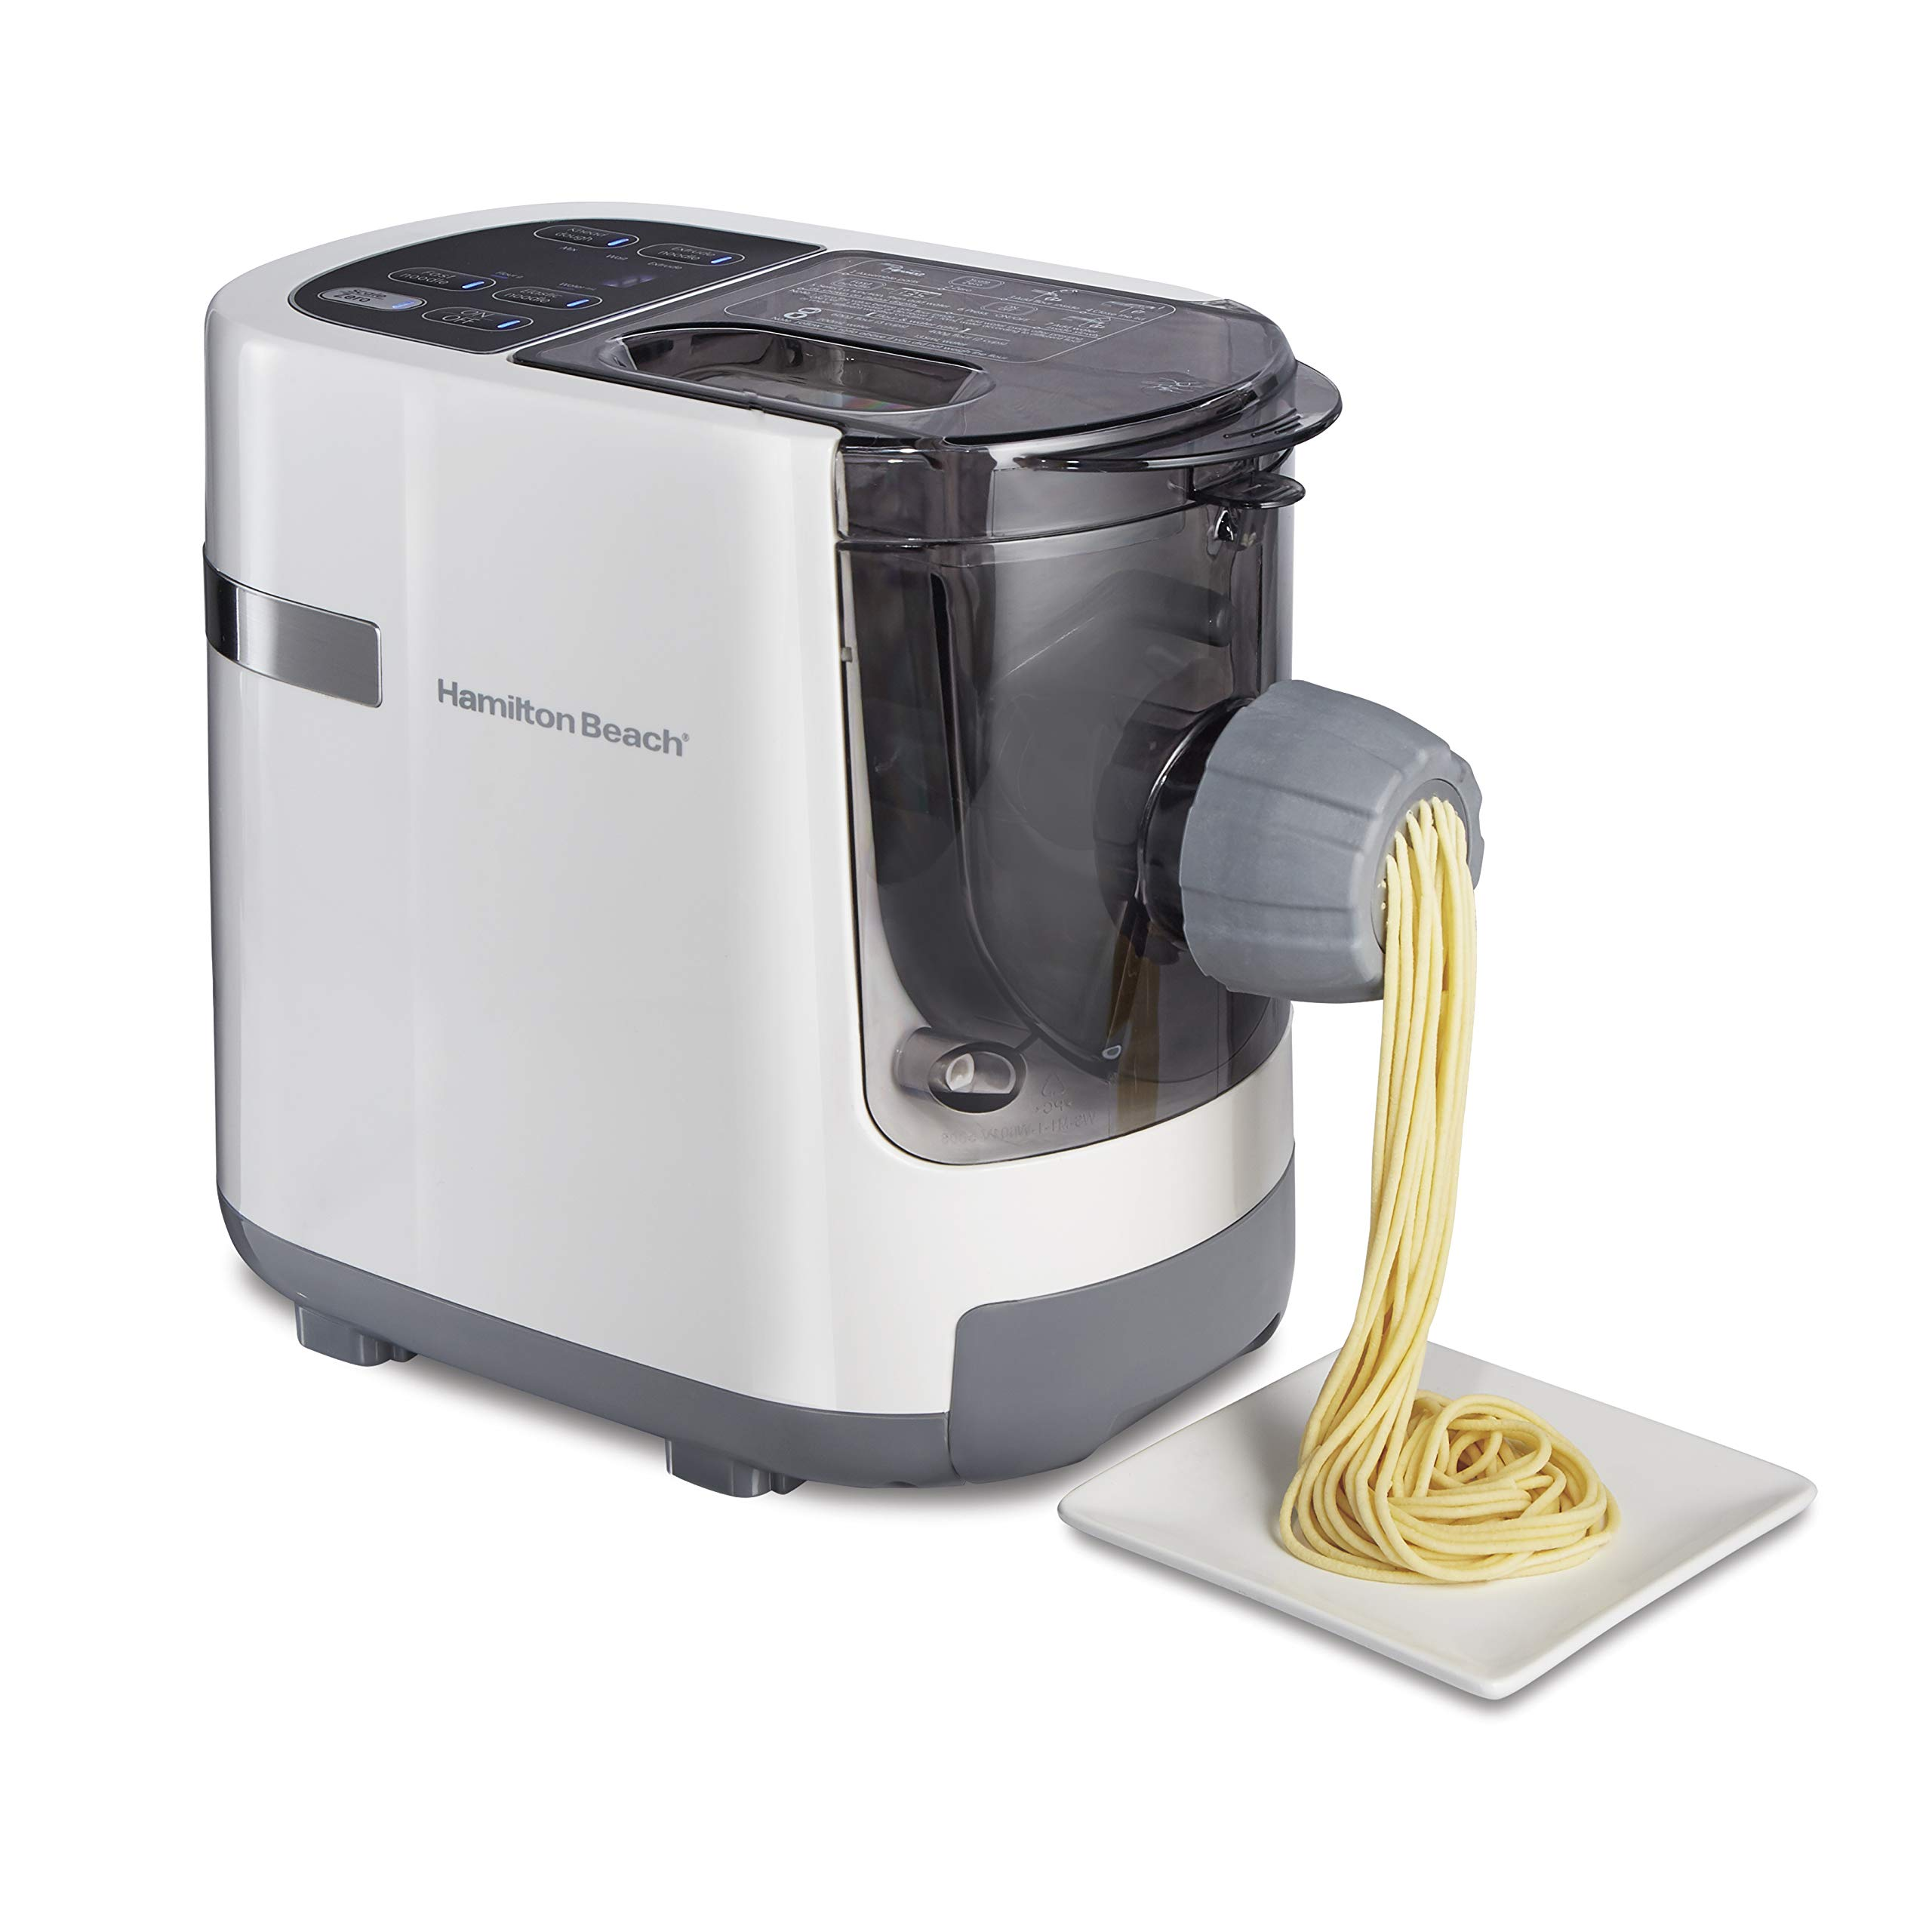 Hamilton Beach Electric Pasta and Noodle Maker, Automatic, 7 Different Shapes, White (86650), by Hamilton Beach